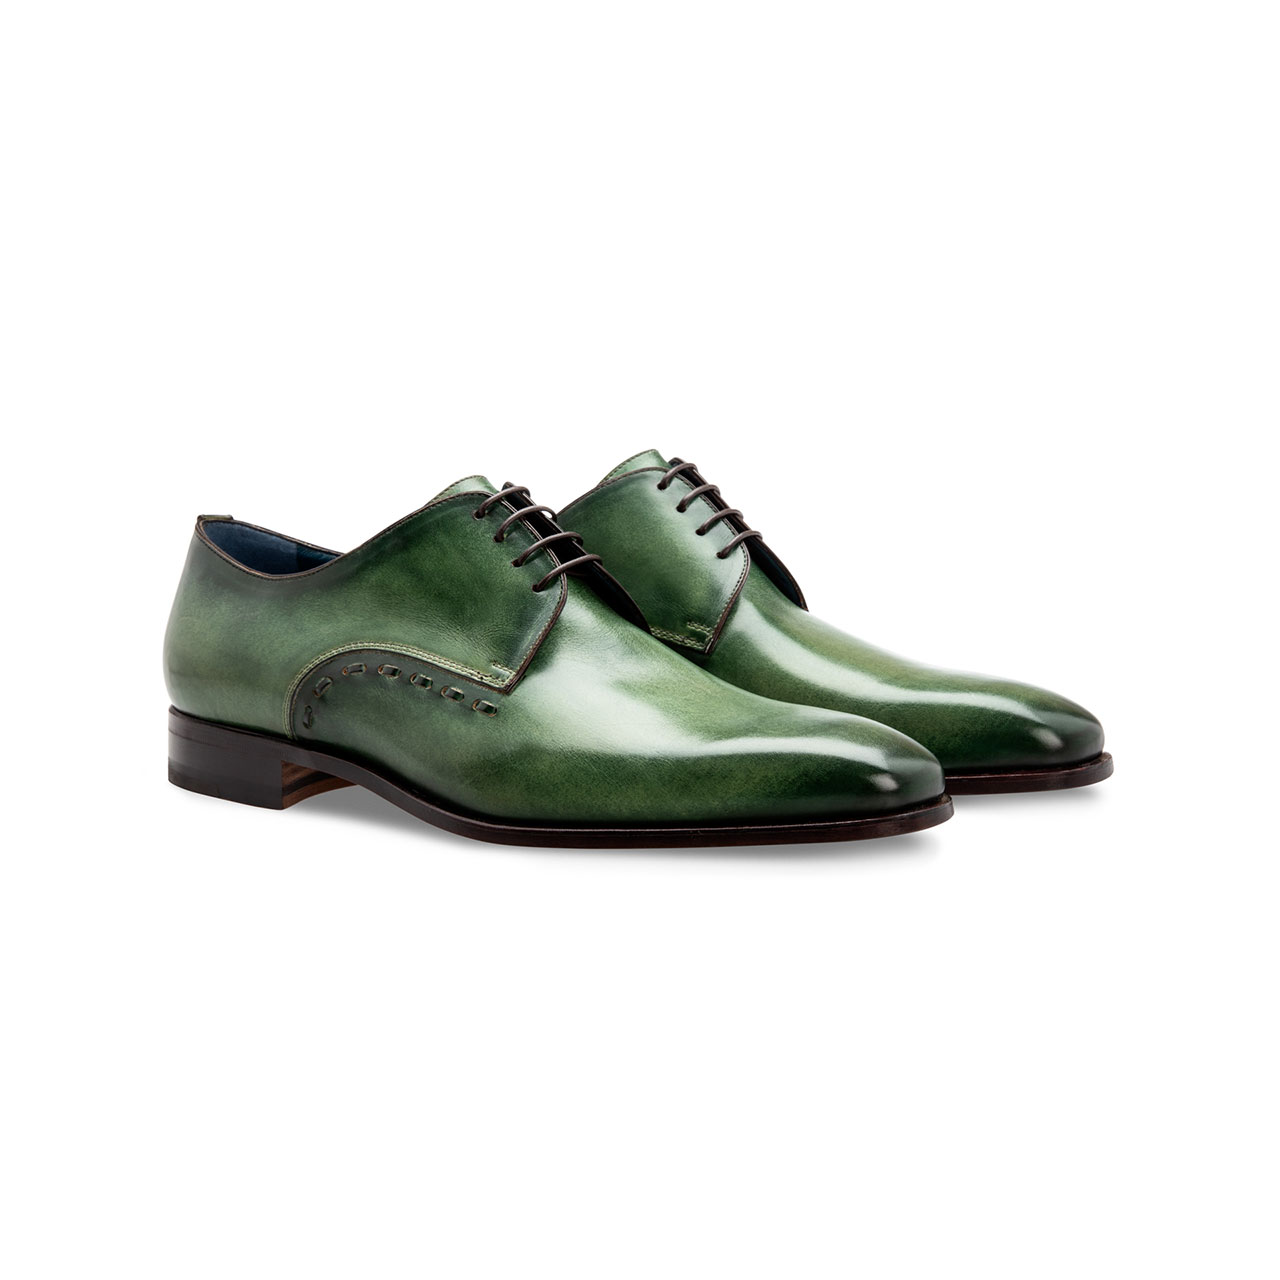 Dark green shoes in Alkhobar Serb stores